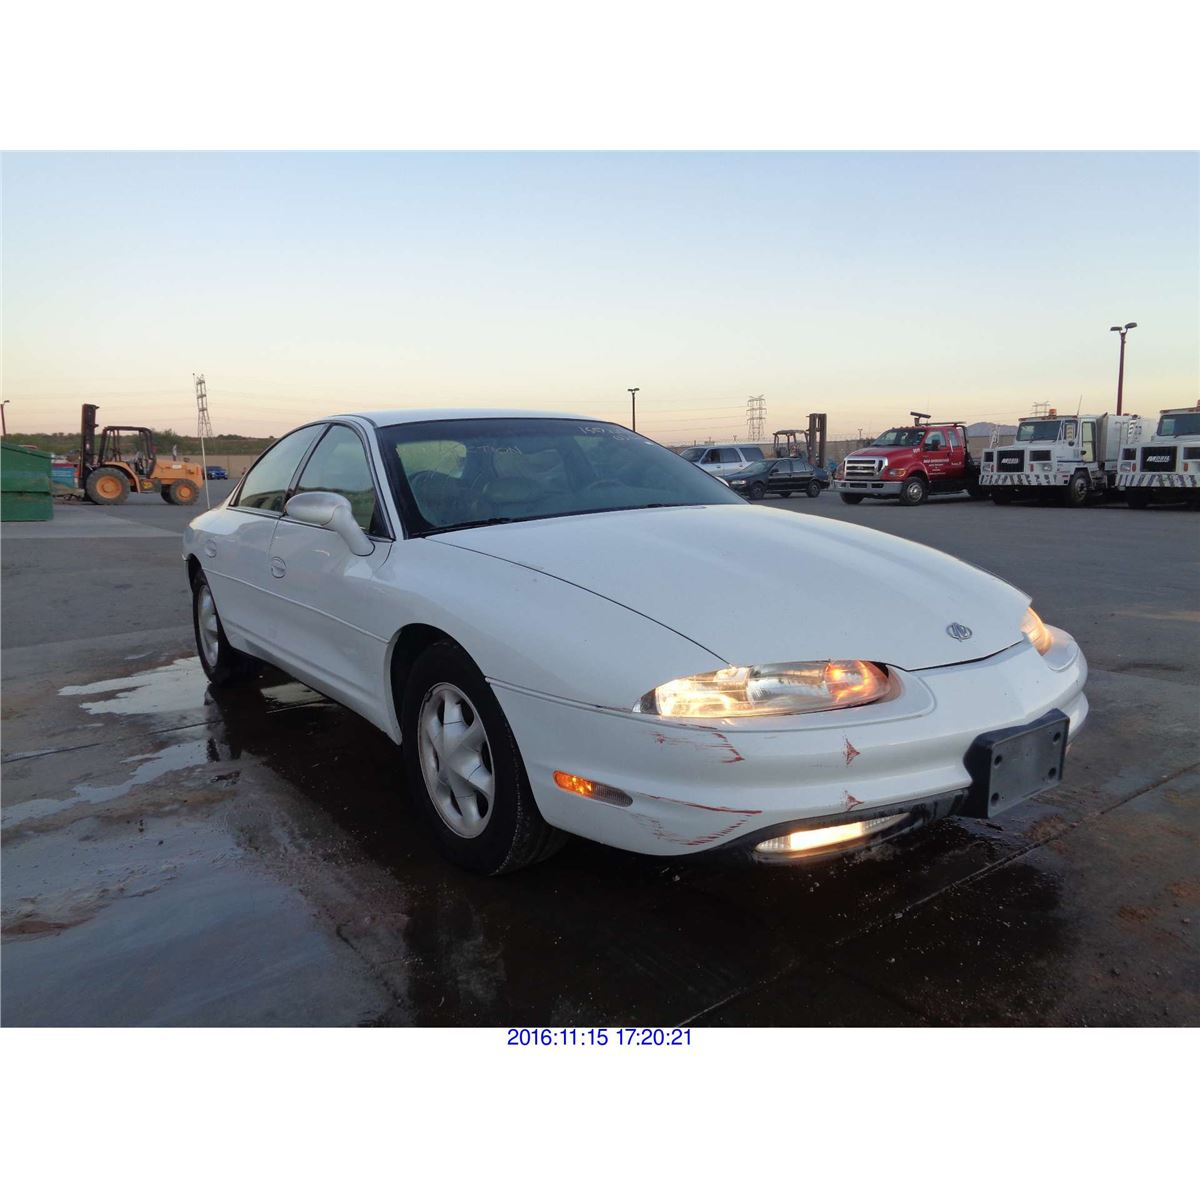 hight resolution of image 1 1999 oldsmobile aurora